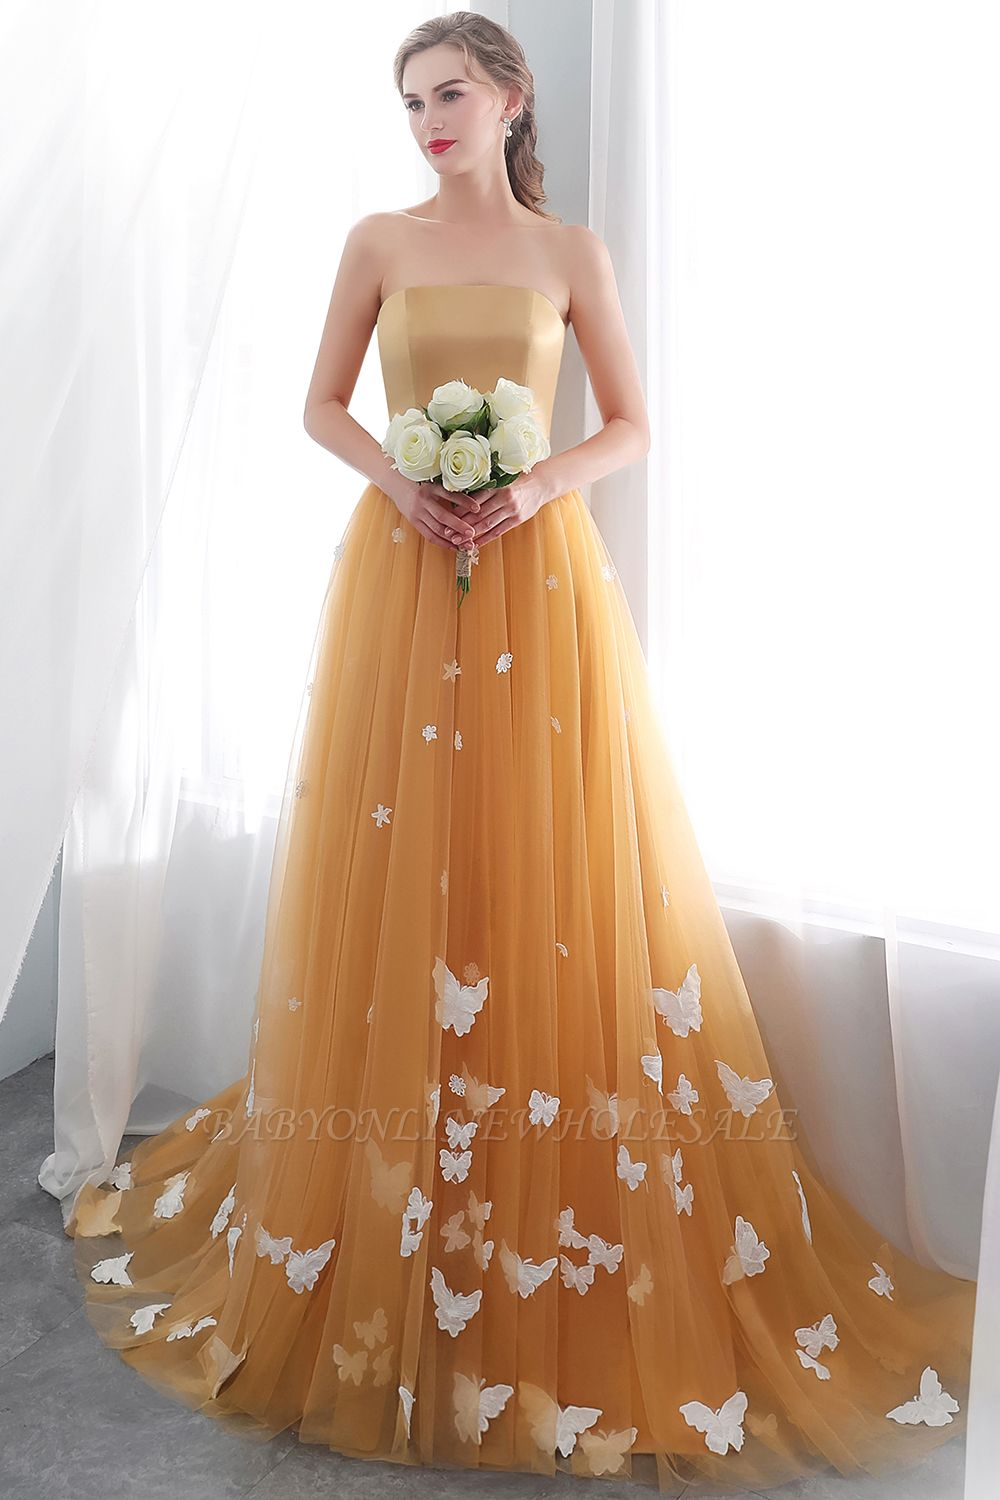 NELL | Aline Floor Length Strapless Appliques Tulle Evening Dresses with Robbion